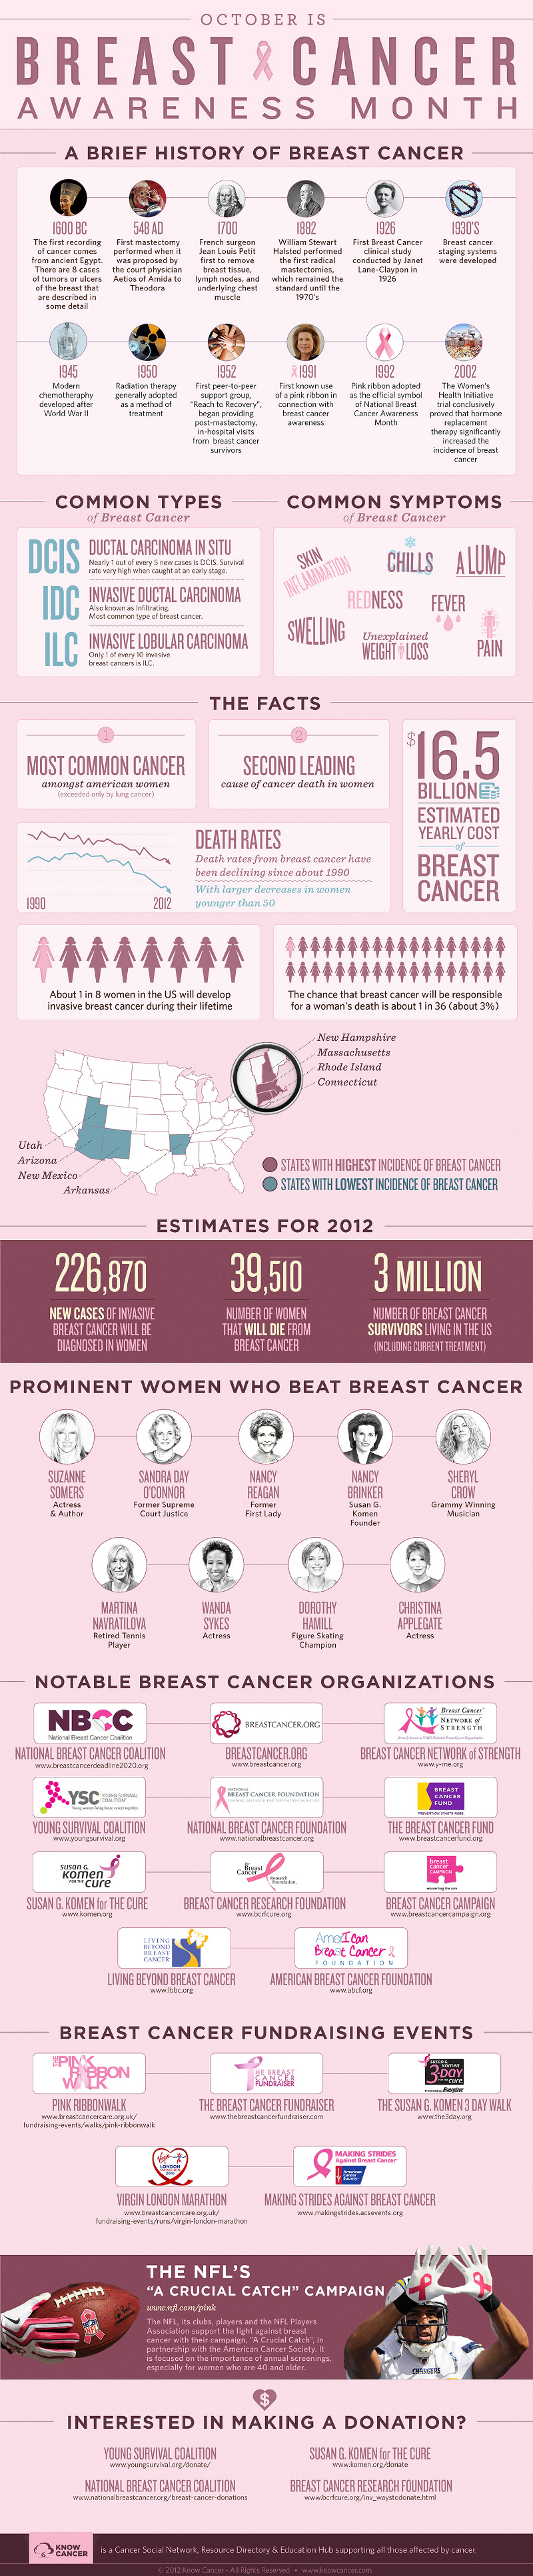 Breast Cancer Timeline